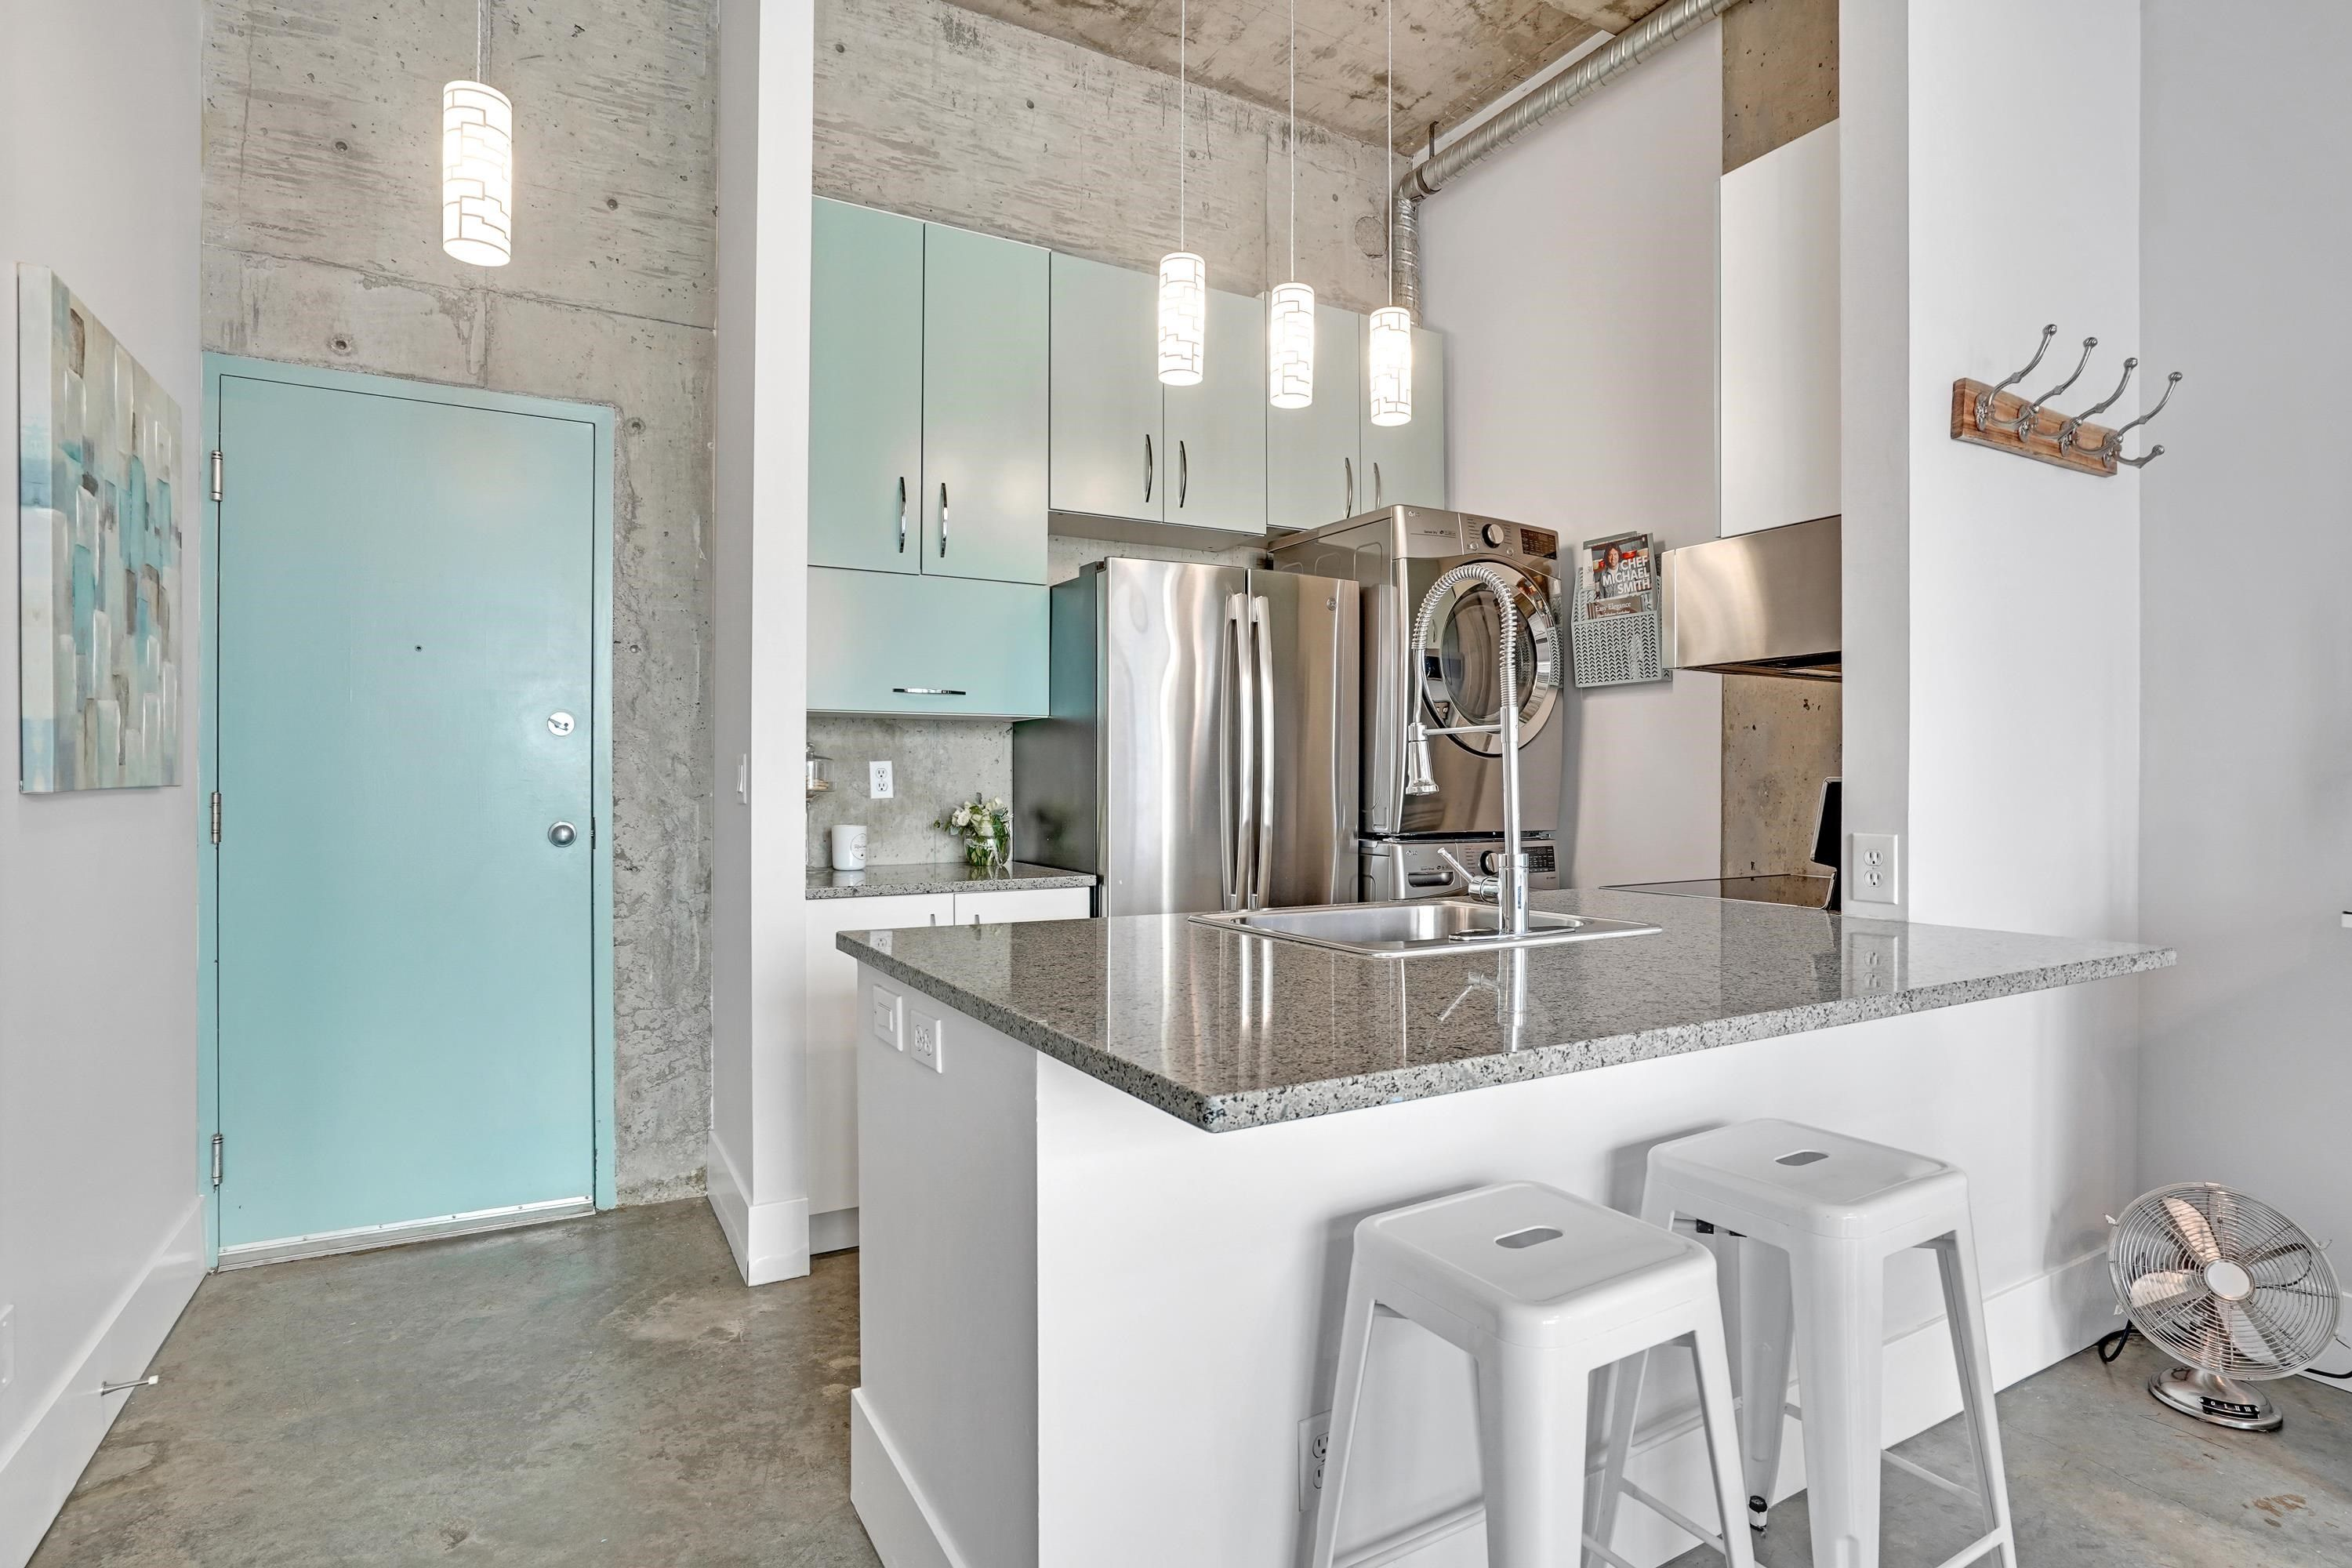 """Main Photo: 204 228 E 4TH Avenue in Vancouver: Mount Pleasant VE Condo for sale in """"THE WATERSHED"""" (Vancouver East)  : MLS®# R2617148"""